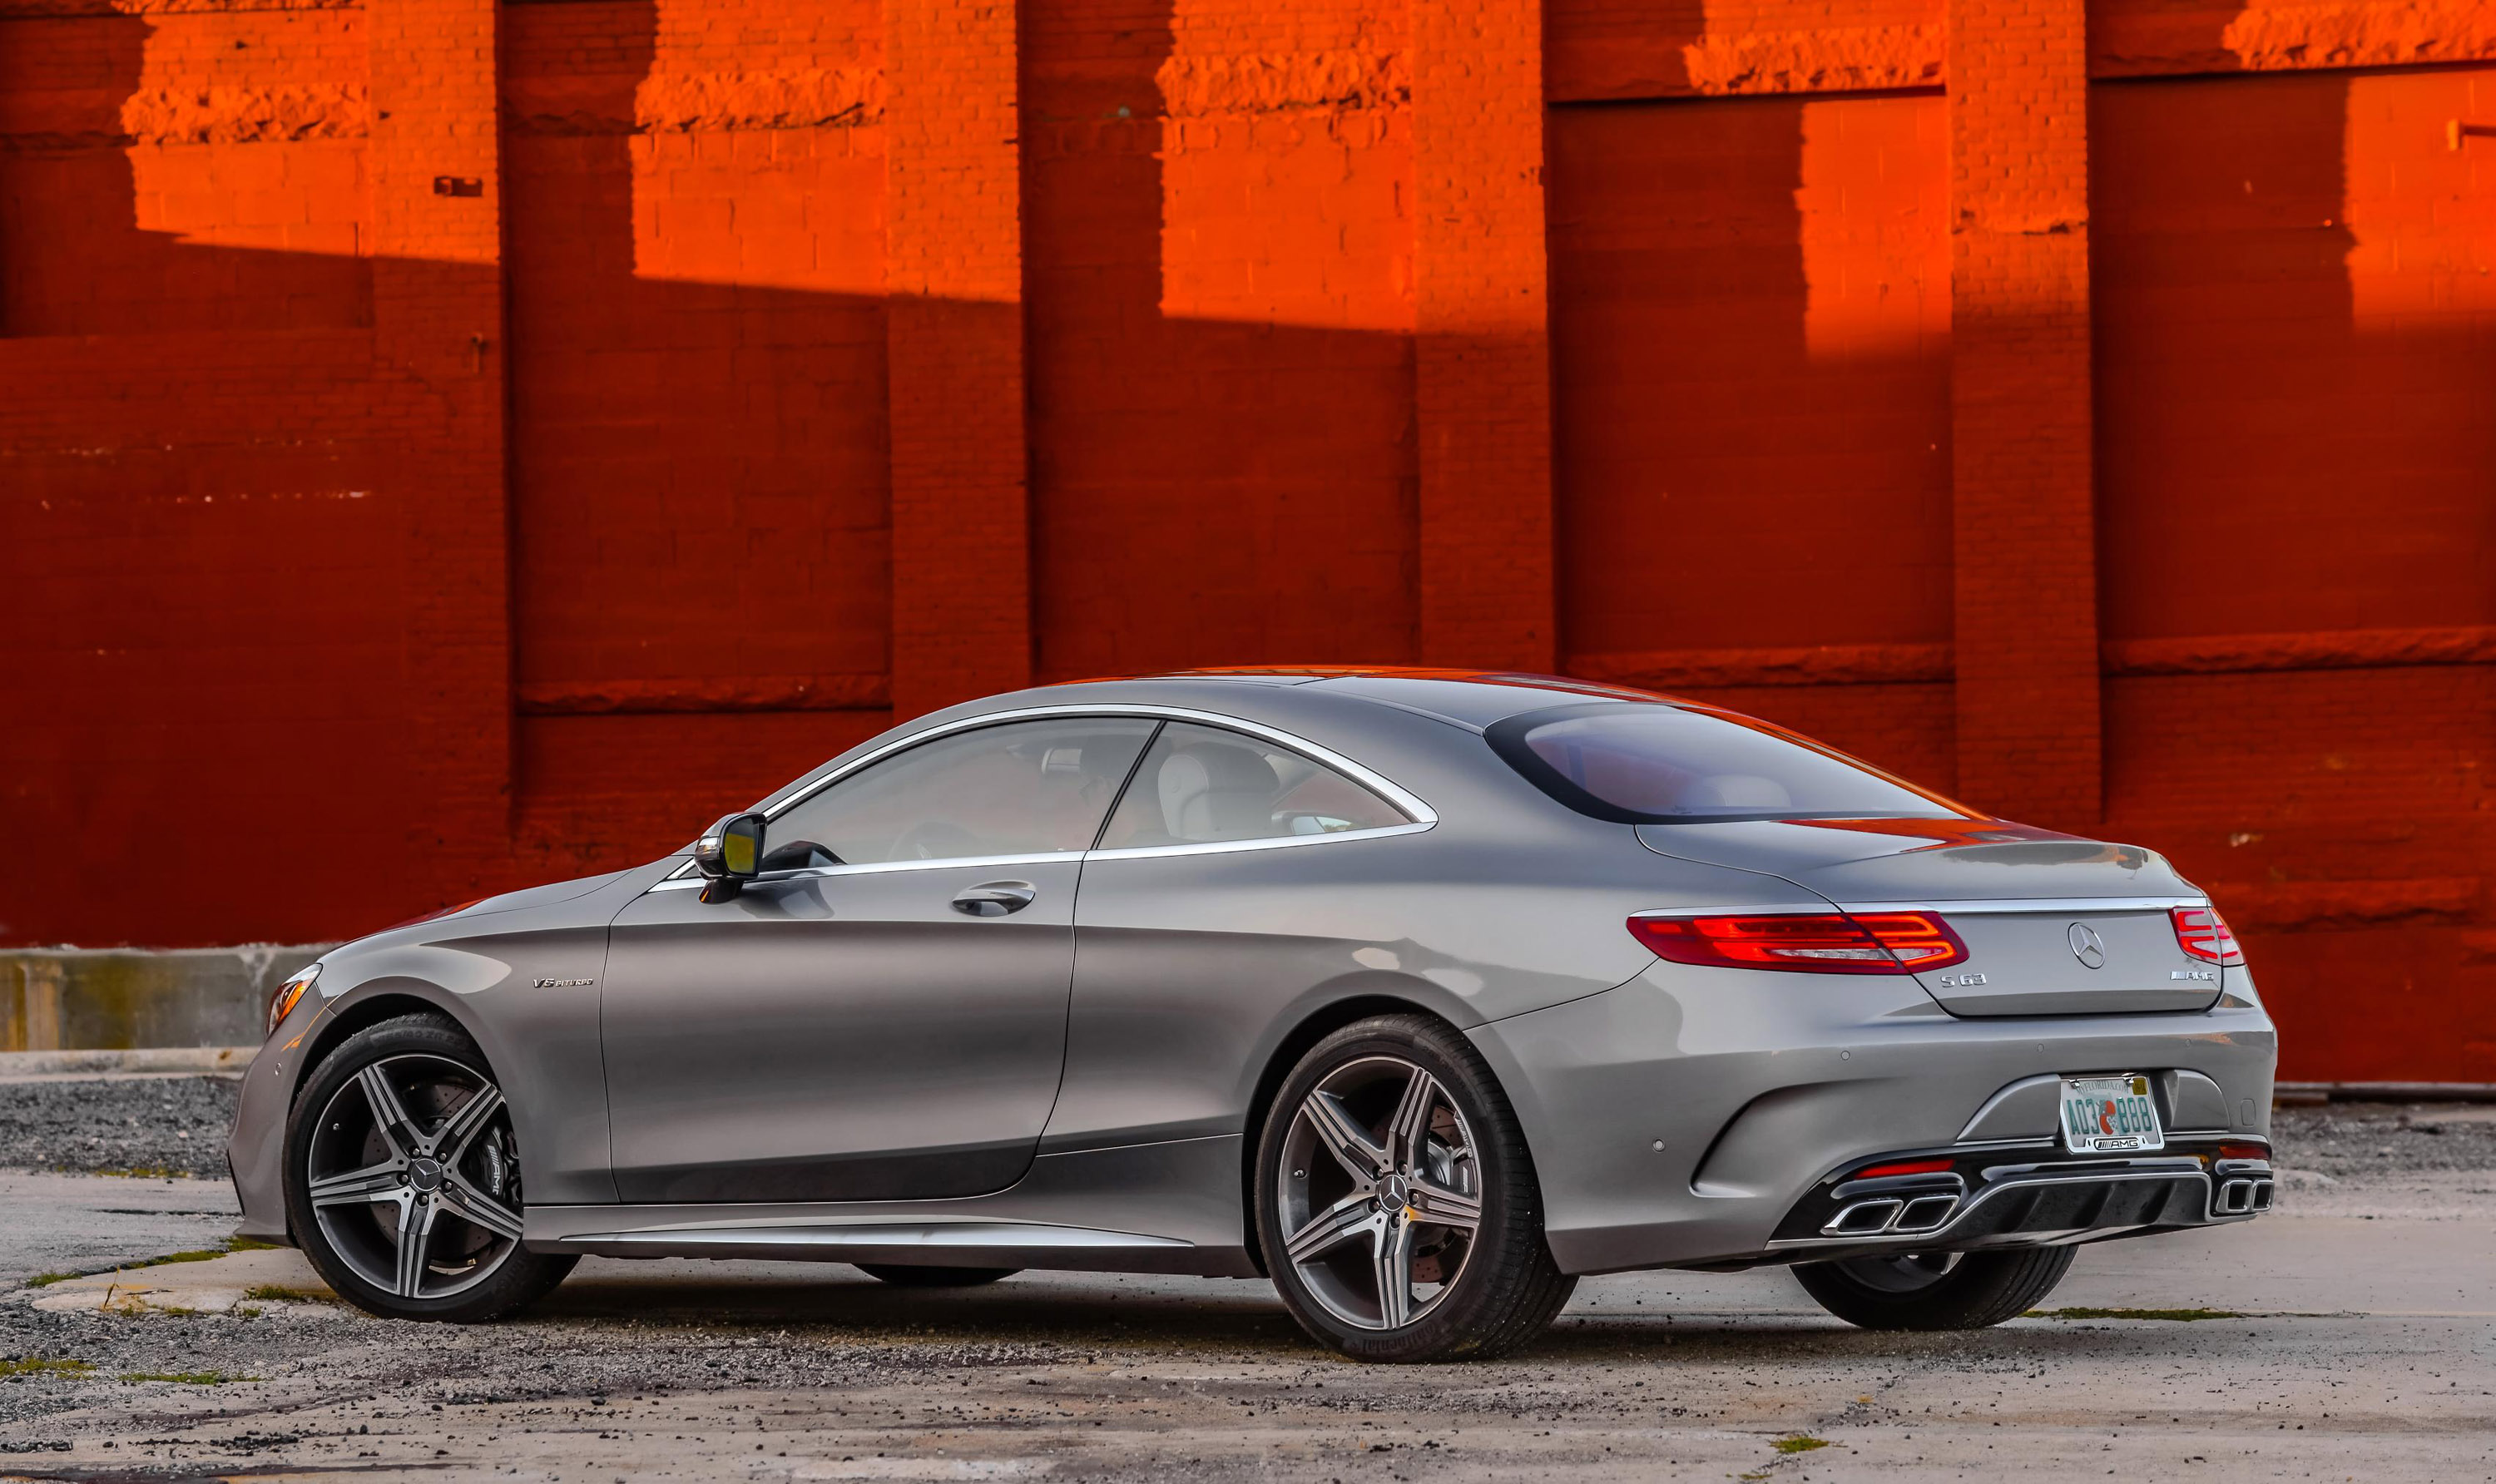 meet the new 2015 mercedes benz s63 amg 4matic coupe. Black Bedroom Furniture Sets. Home Design Ideas